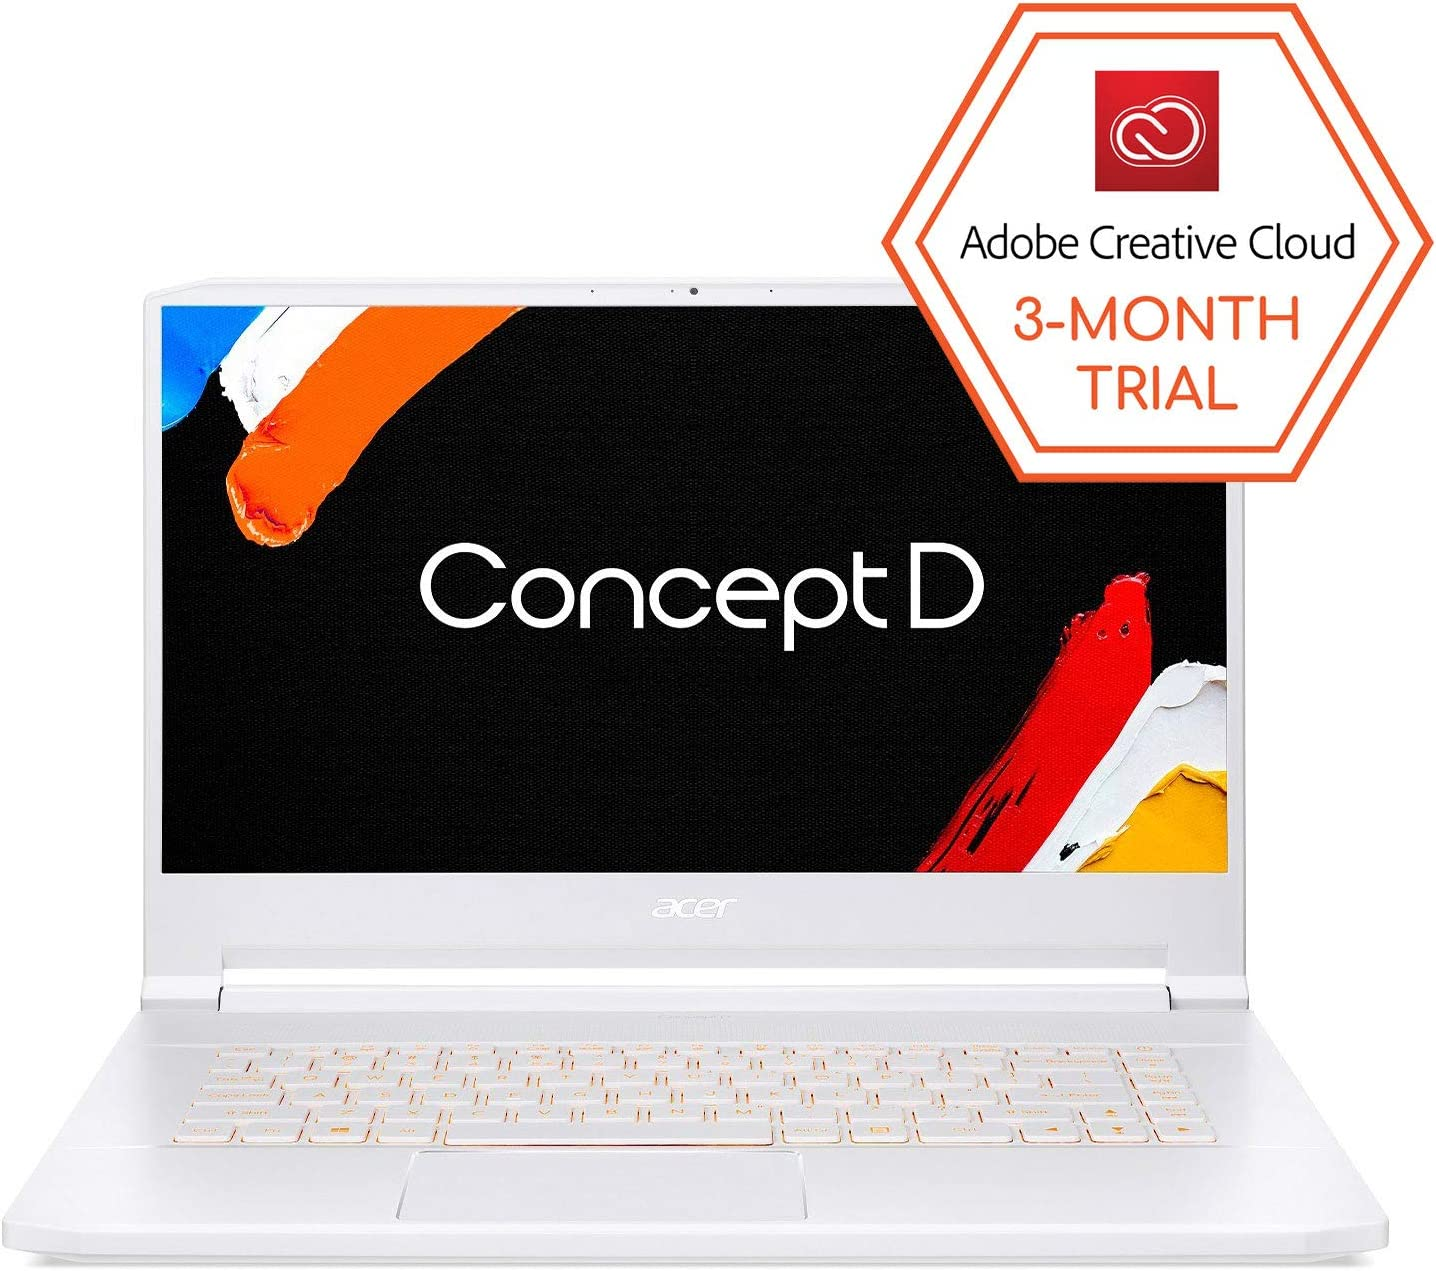 "ConceptD 7 Pro CN715-71P-770L Creator Laptop, Intel i7-9750H, NVIDIA Quadro RTX 5000, RTX Studio, 15.6"" 4K Ultra HD IPS, 100% Adobe RGB, PANTONE Validated, Delta E<2, 32GB DDR4, 2TB NVMe SSD in RAID 0"